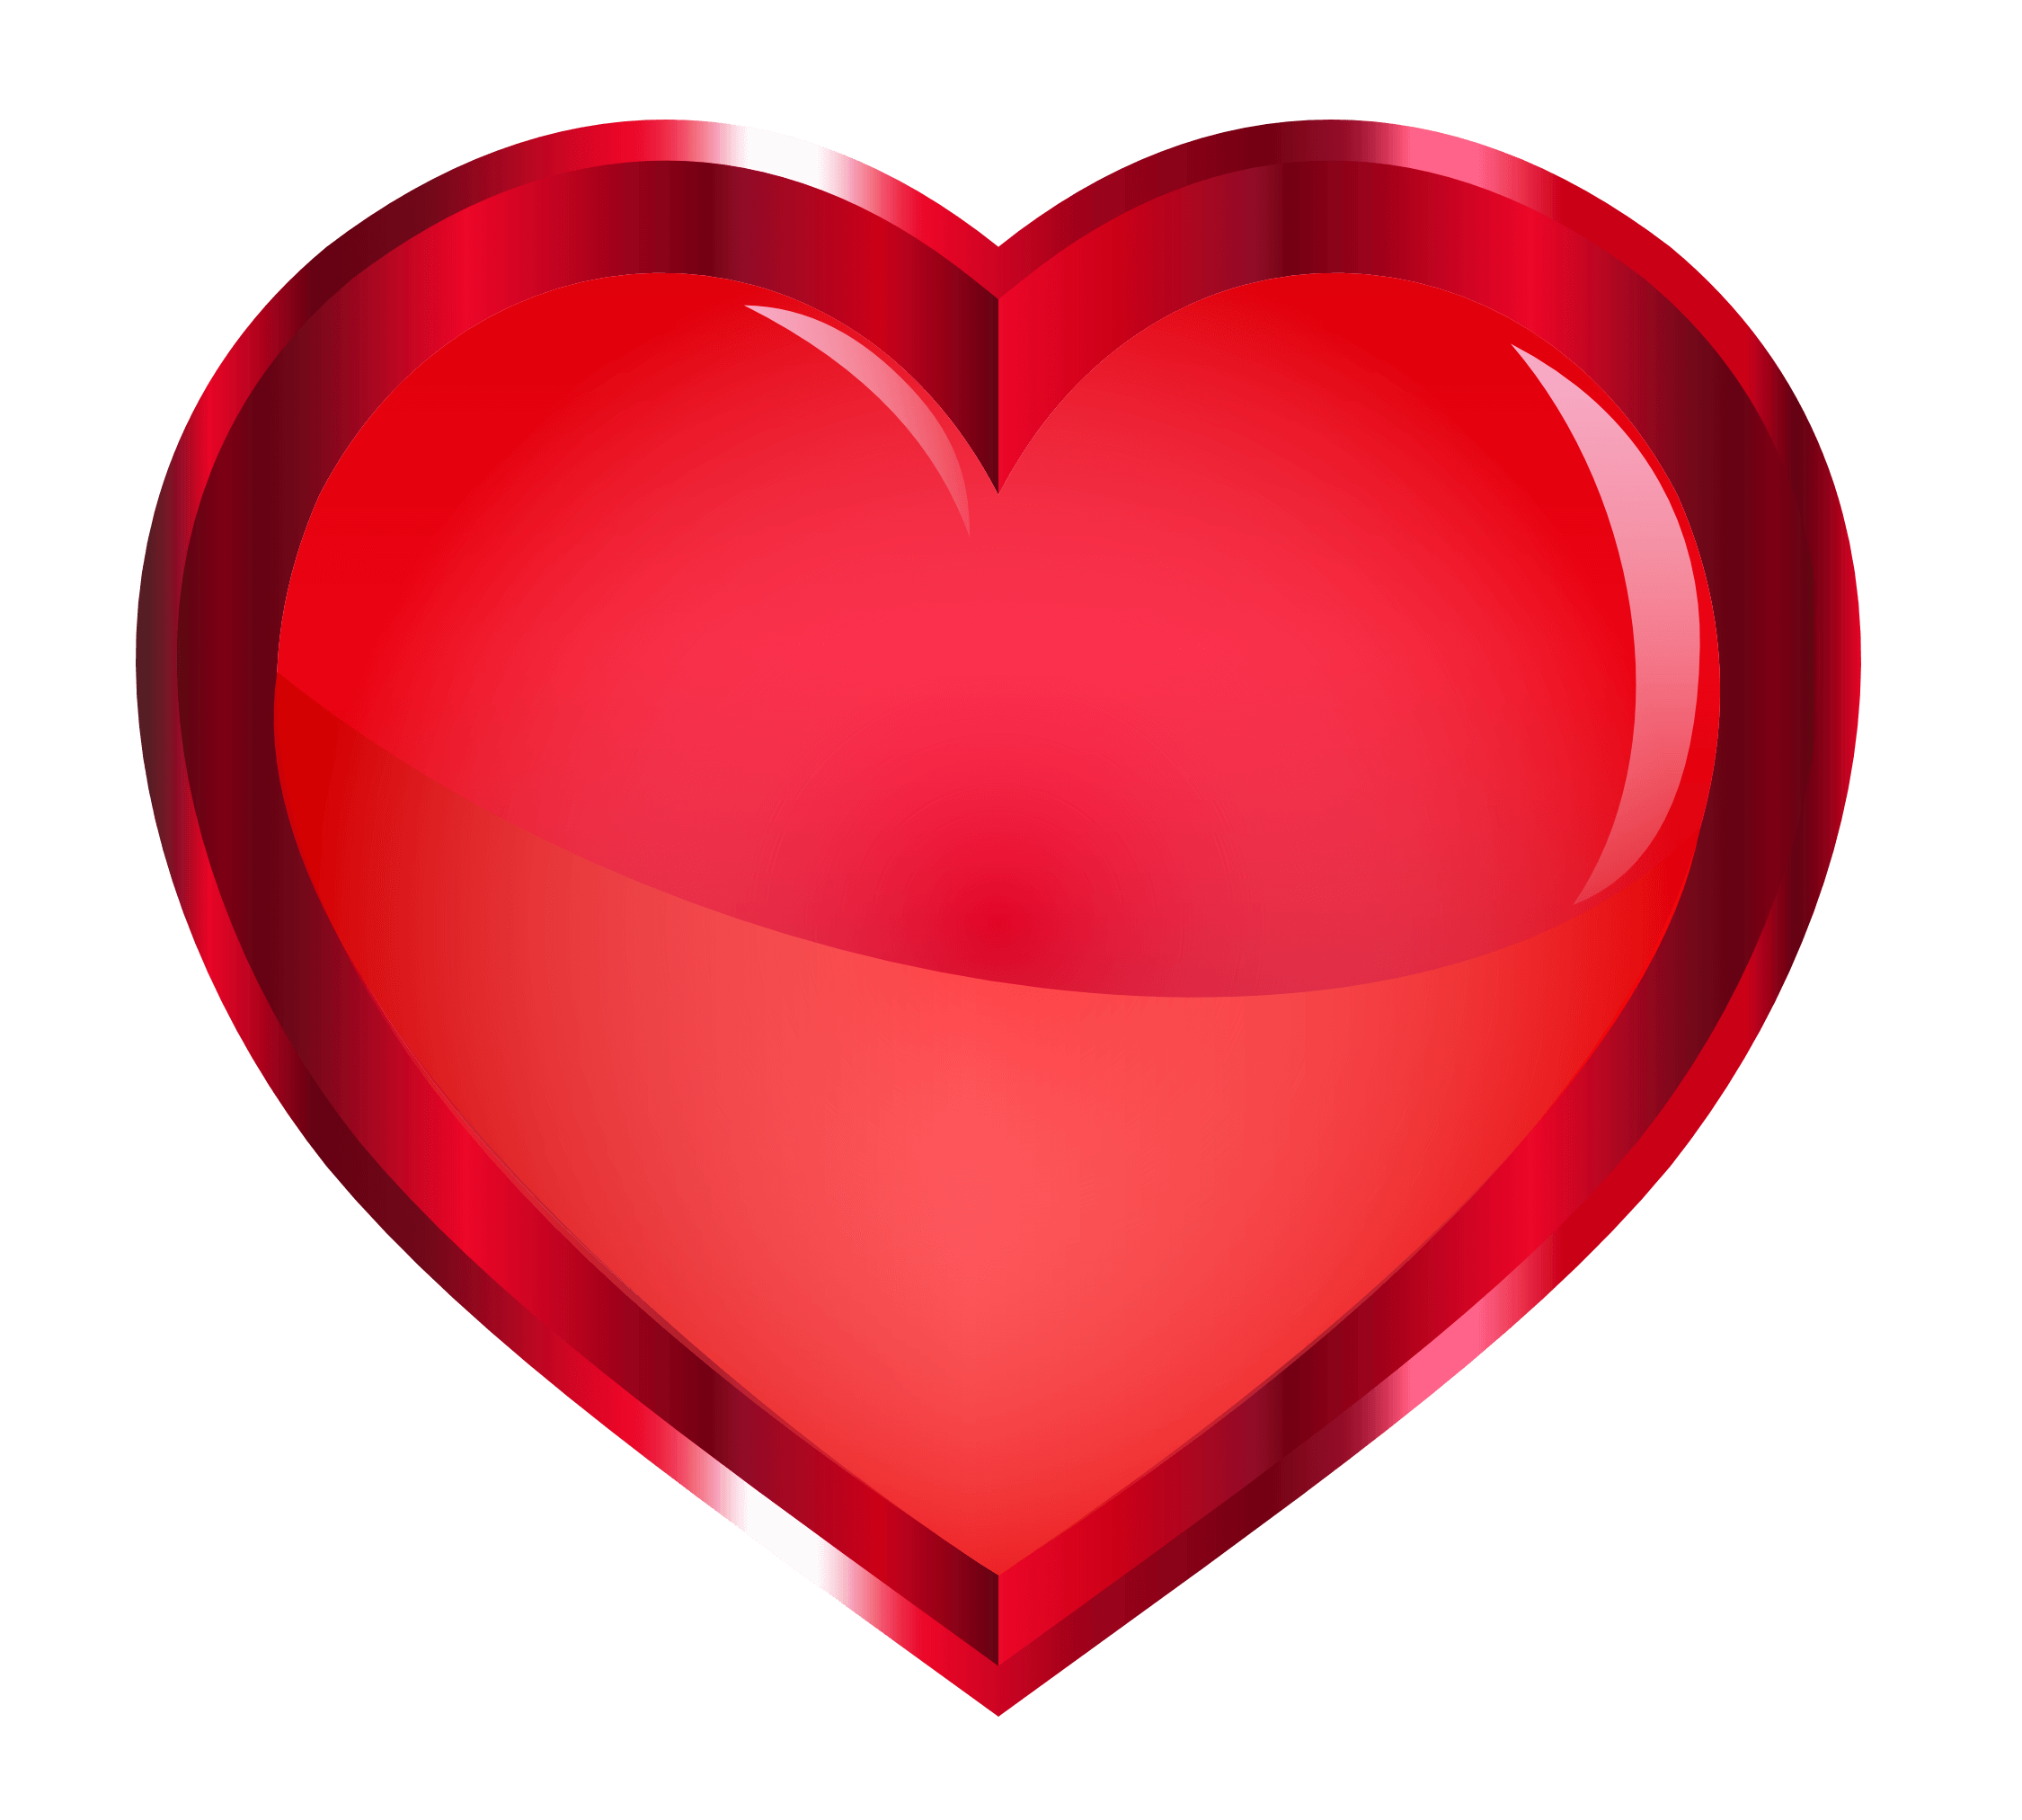 Artificial heart clipart picture black and white stock Image Of Red Heart (25+) Image Of Red Heart Backgrounds picture black and white stock